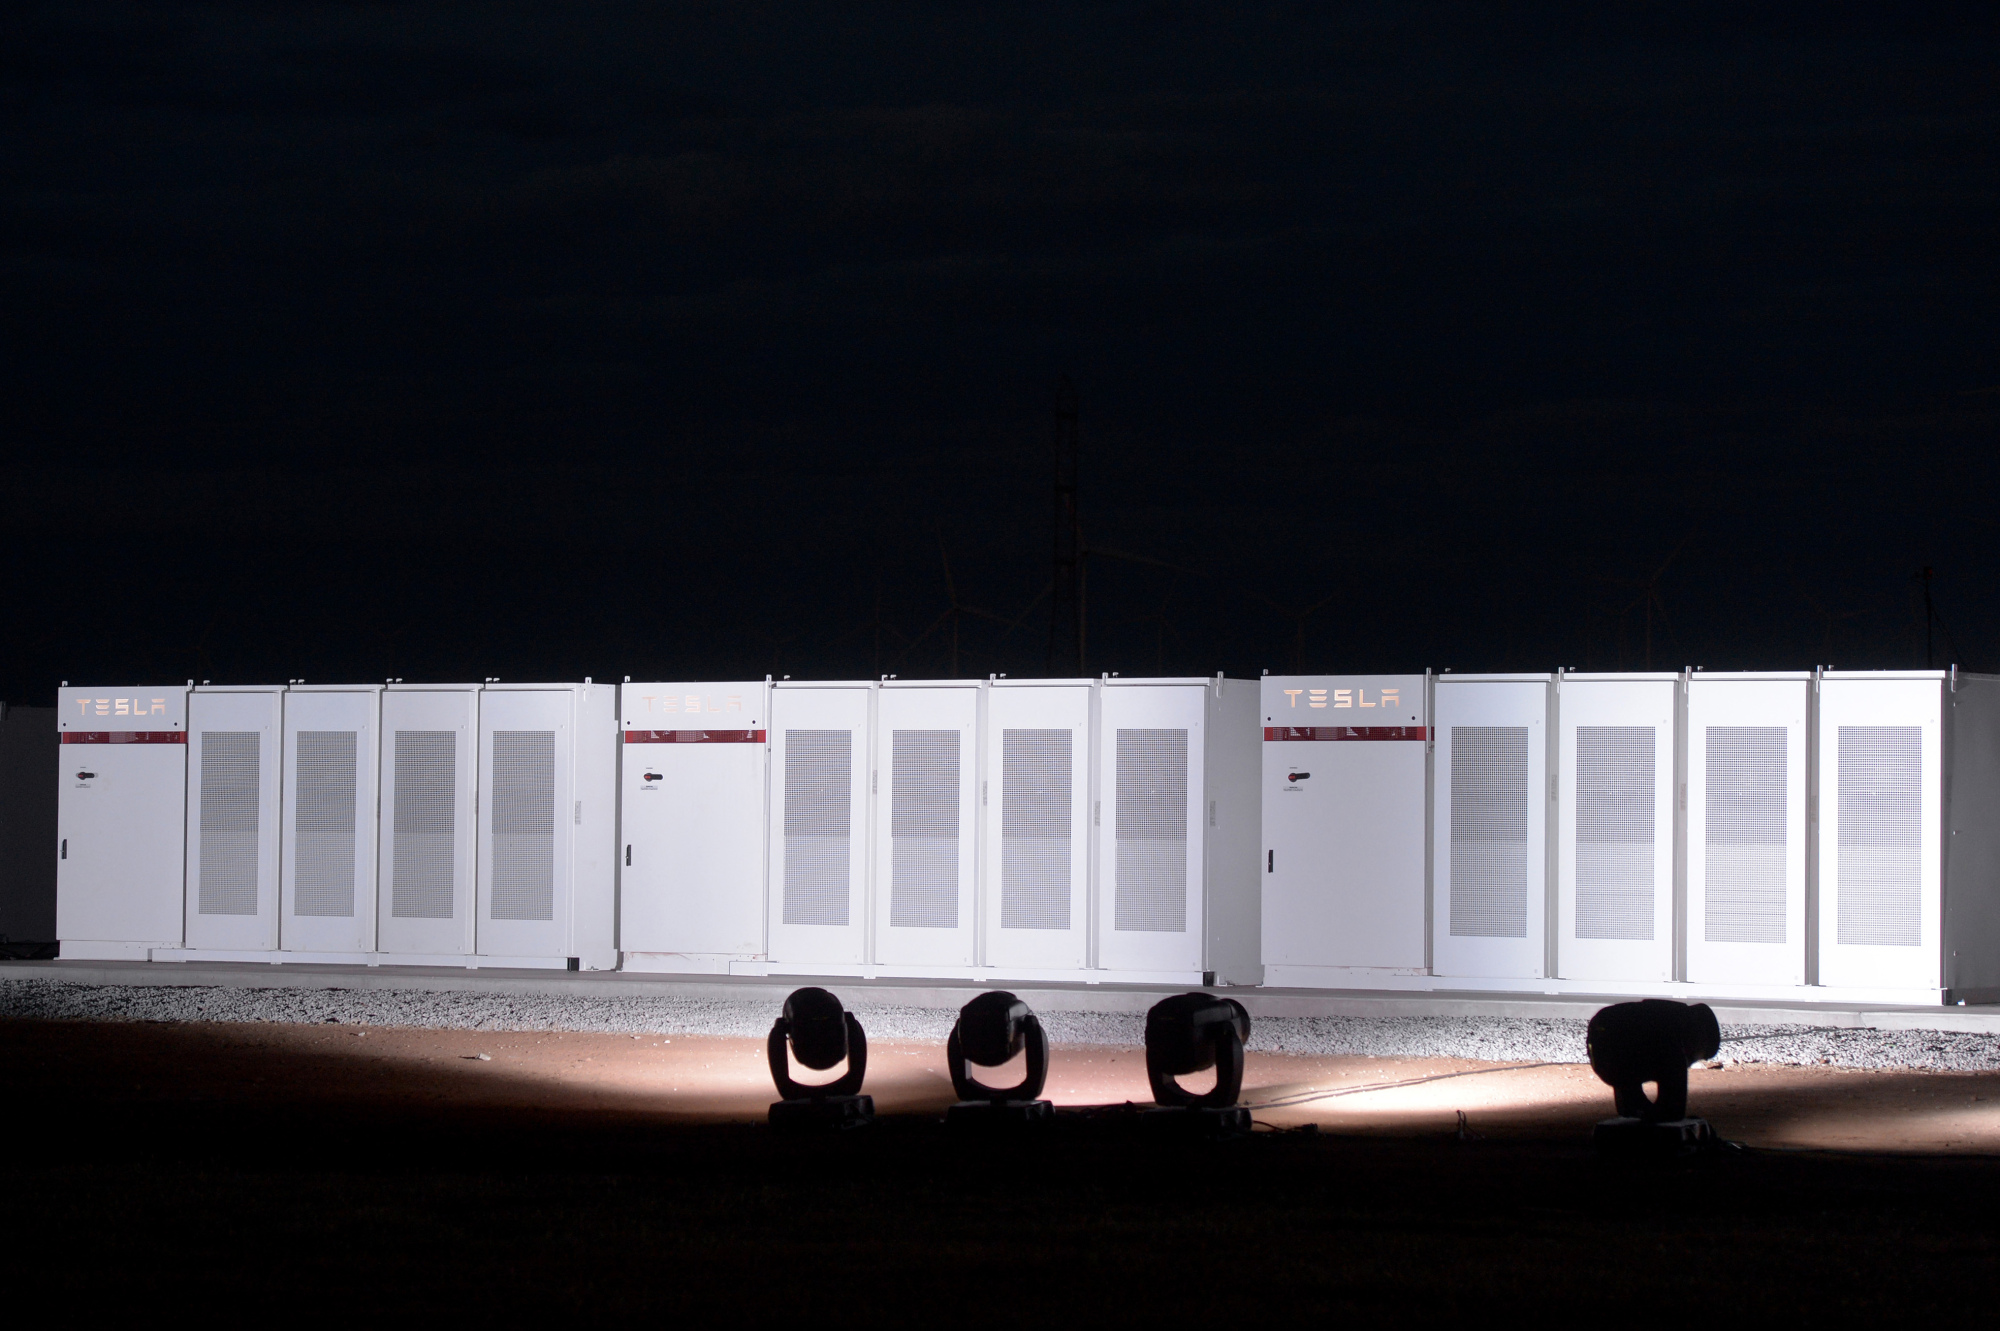 Tesla CEO Elon Musk Attends Powerpack Project Event at the Hornsdale Windfarm